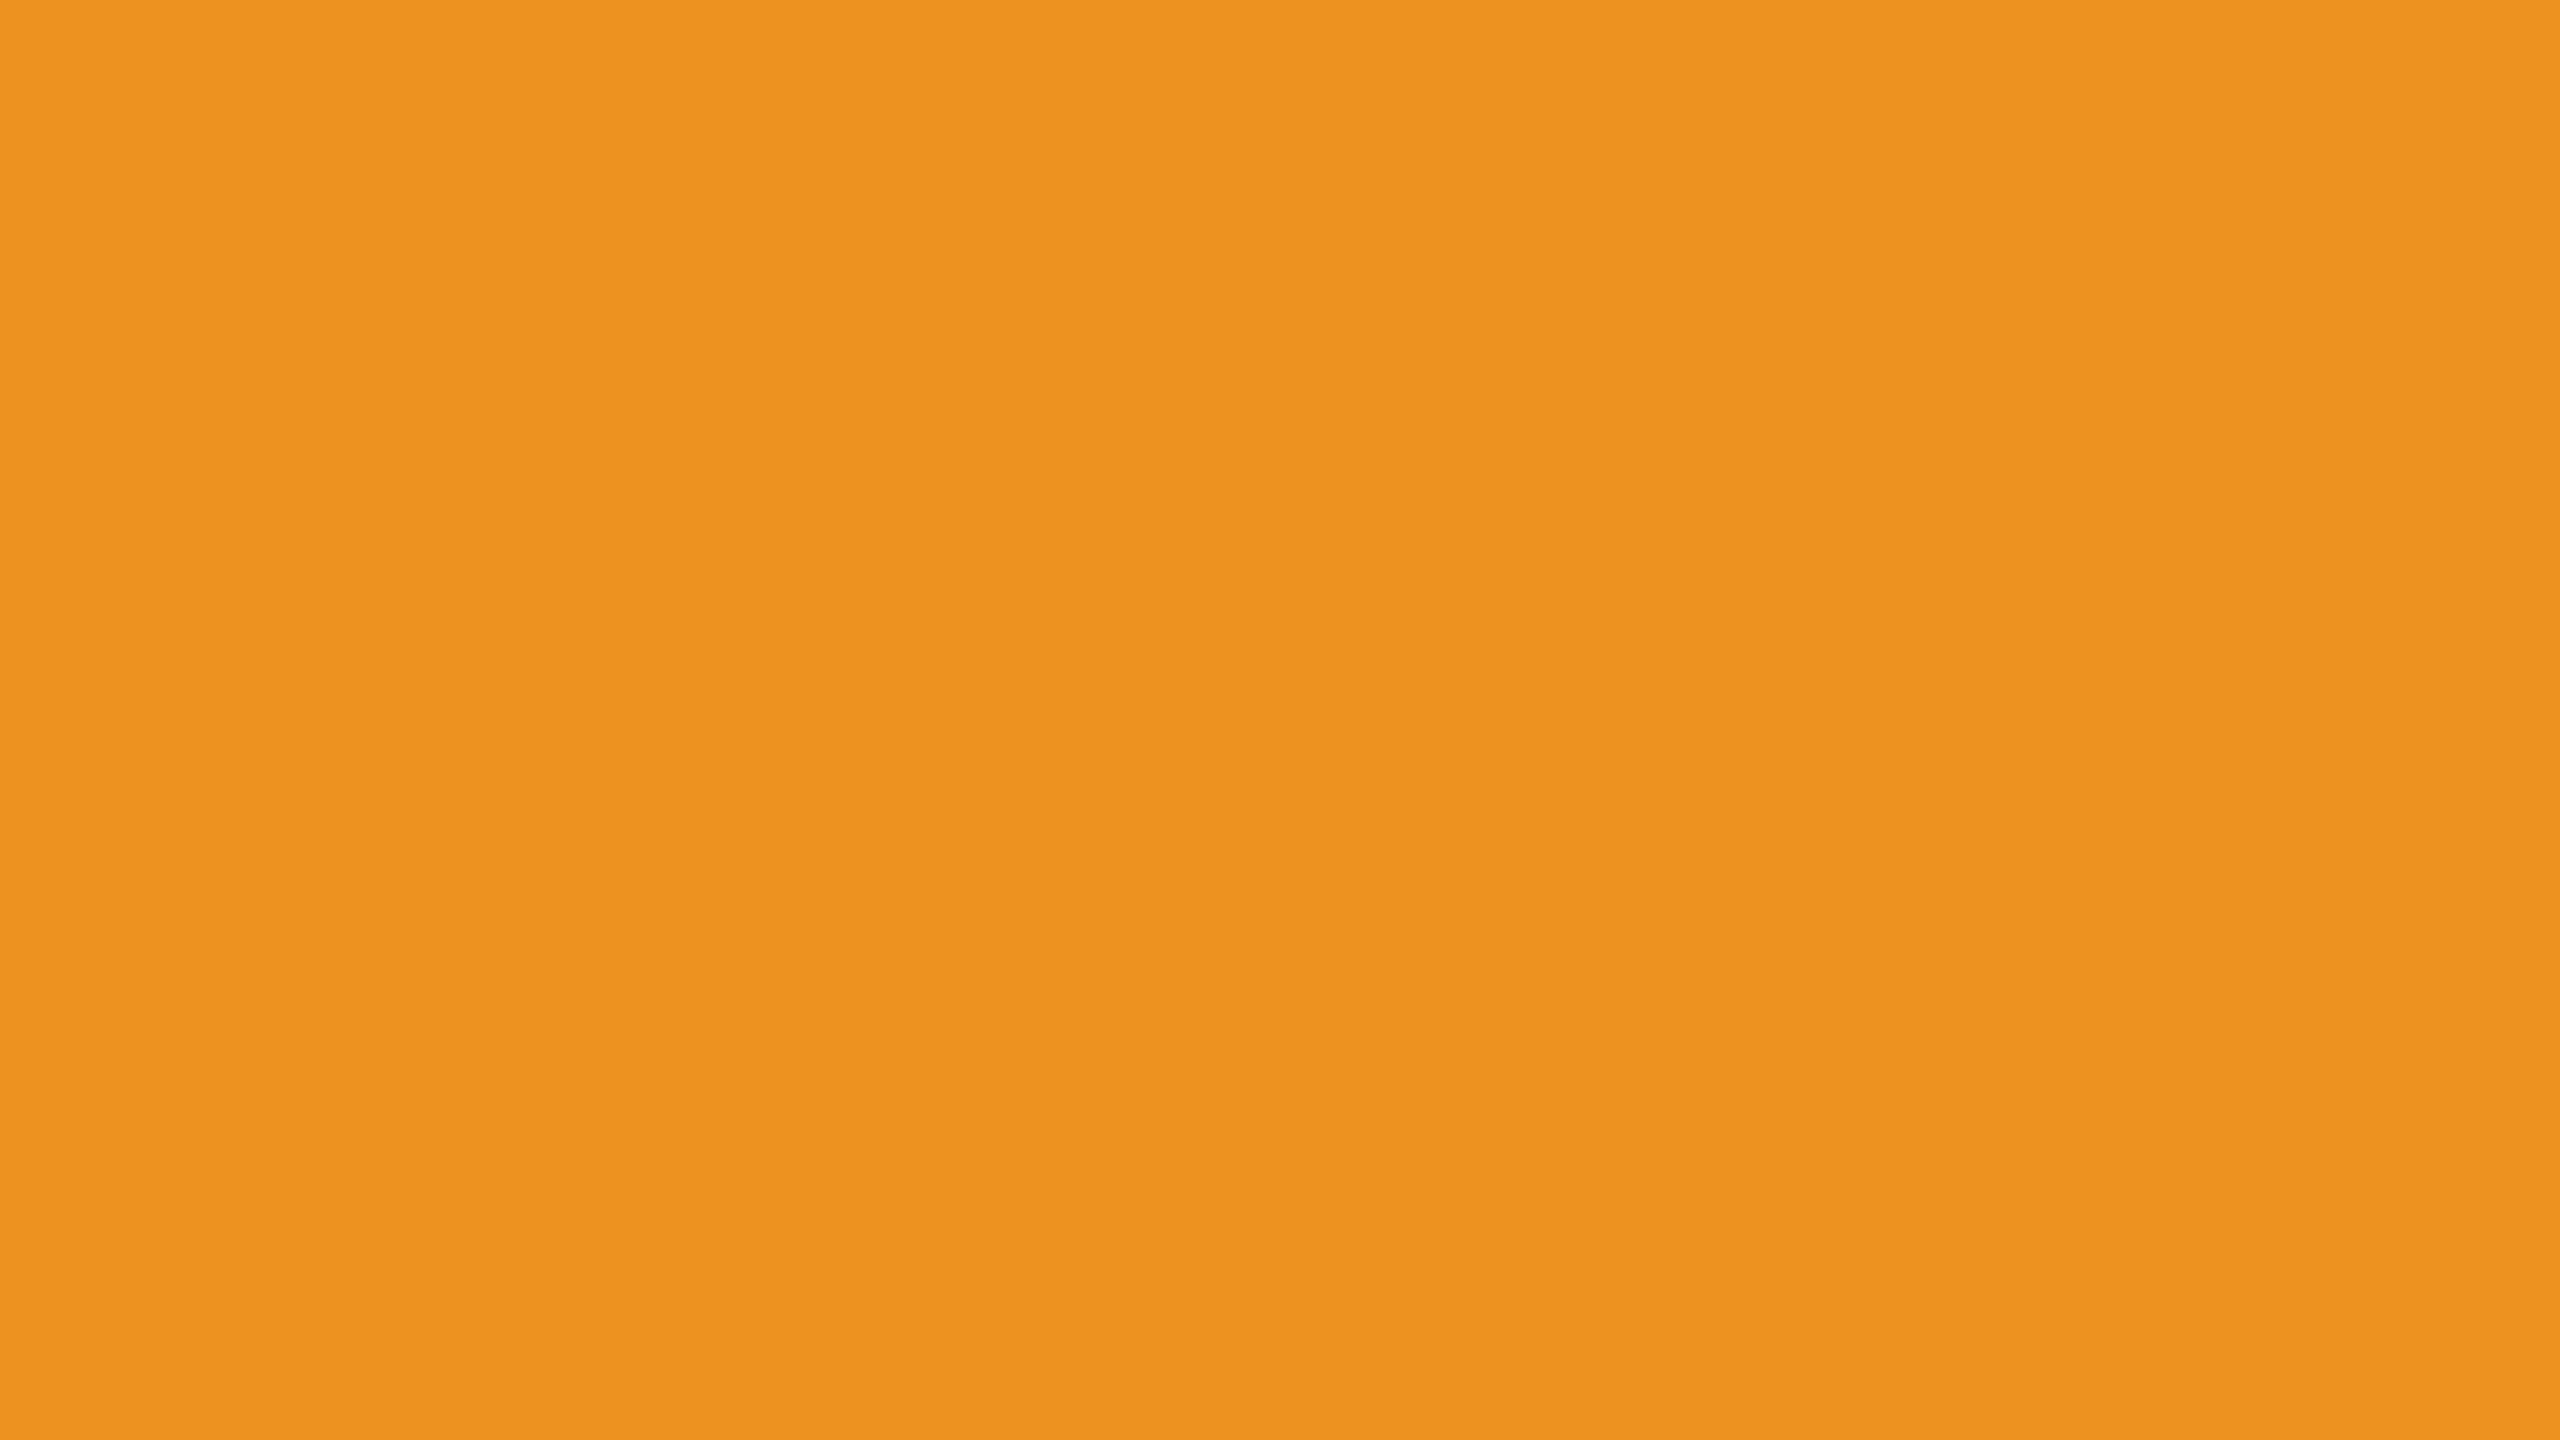 2560x1440 Carrot Orange Solid Color Background